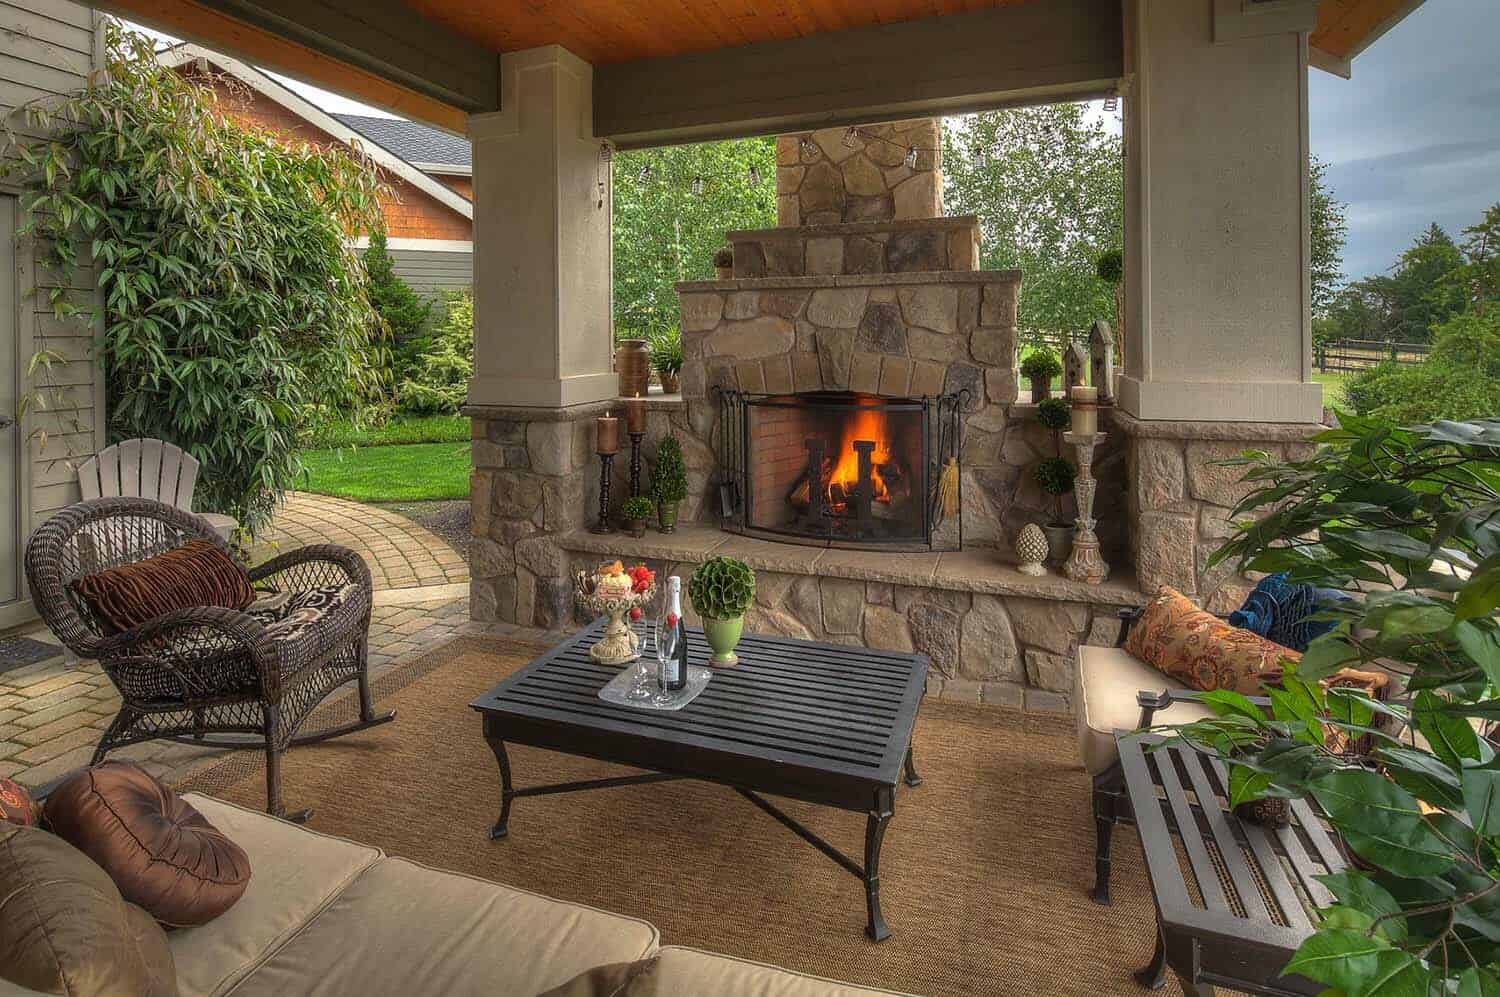 30+ Irresistible outdoor fireplace ideas that will leave ... on Small Outdoor Fireplace Ideas id=90651